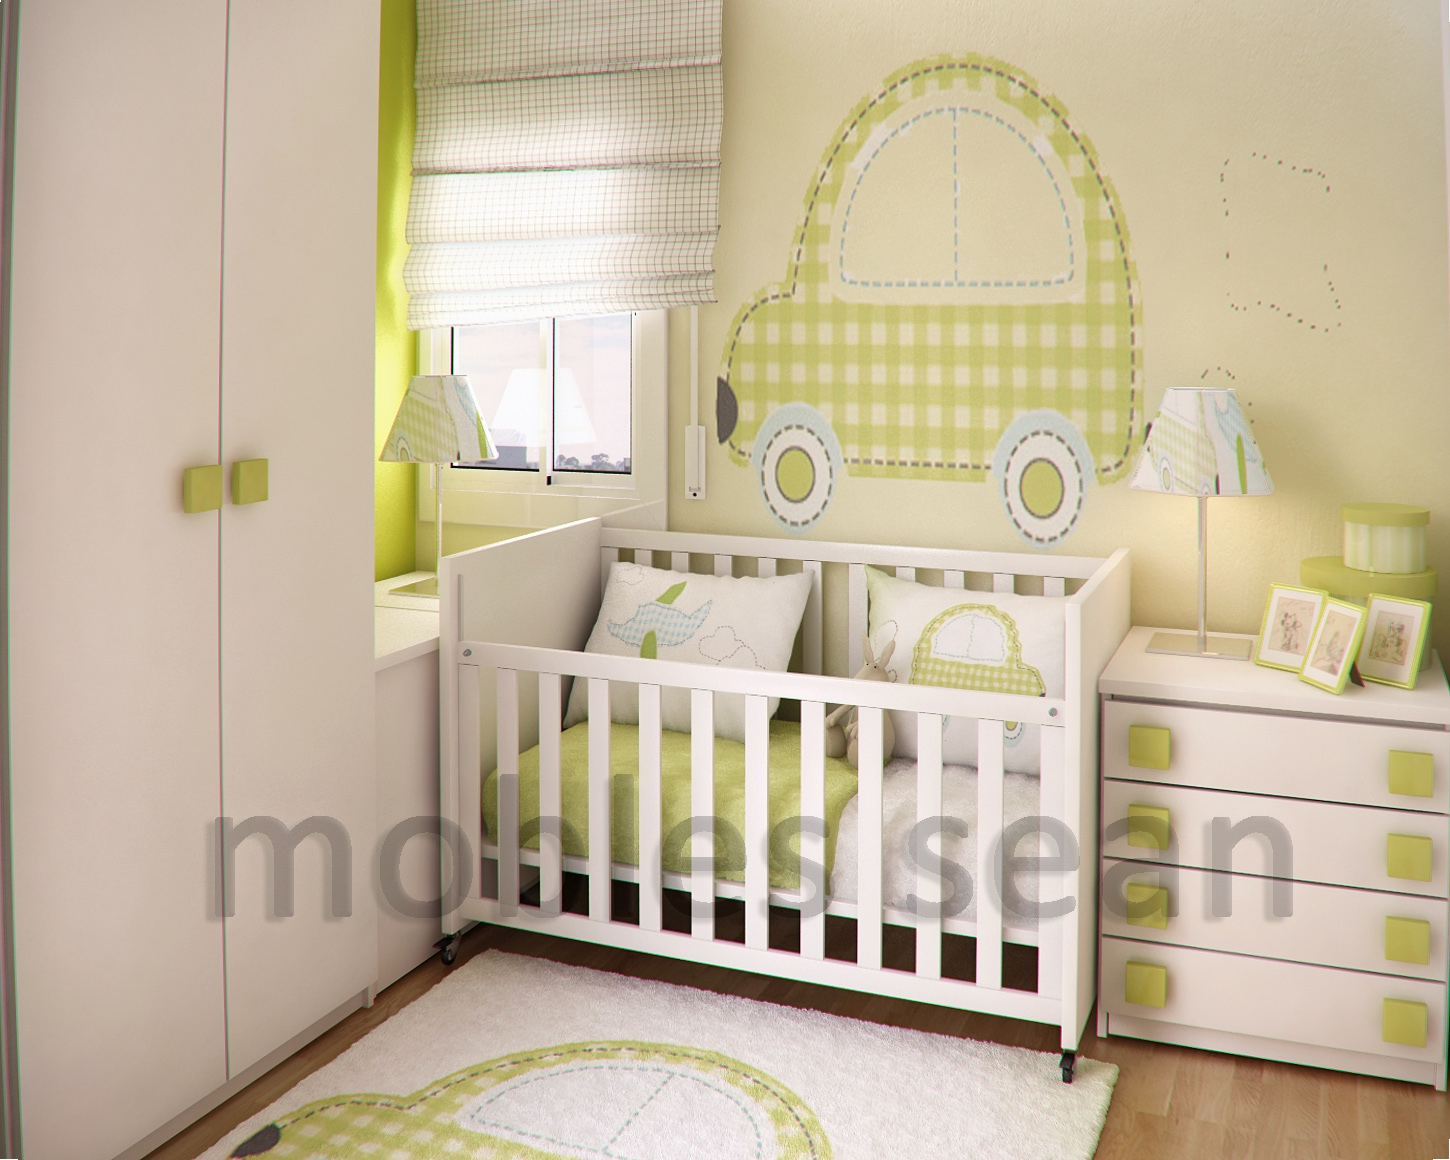 Space saving designs for small kids rooms - Baby nursey ideas ...